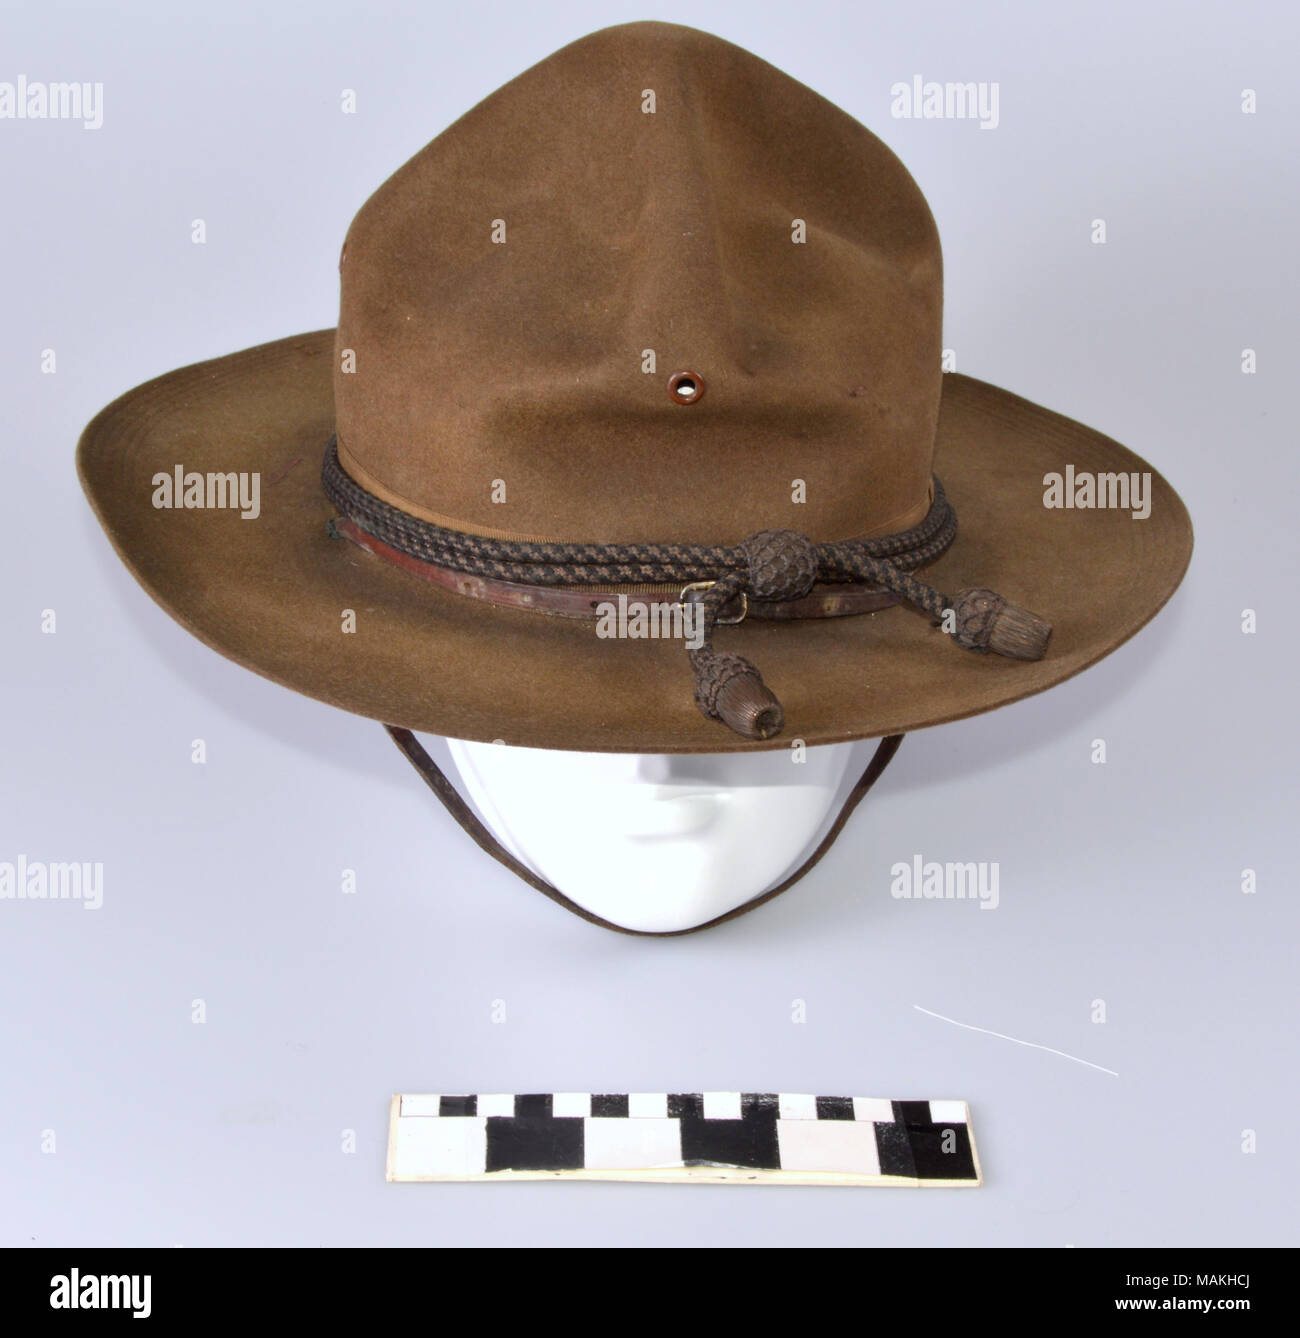 Olive drab Montana Peak military campaign hat. Tan felt hat with wide  circular brim and four pinched peaks on the crown. Hat cord around brim is  black and ... e9d2e3f54d1